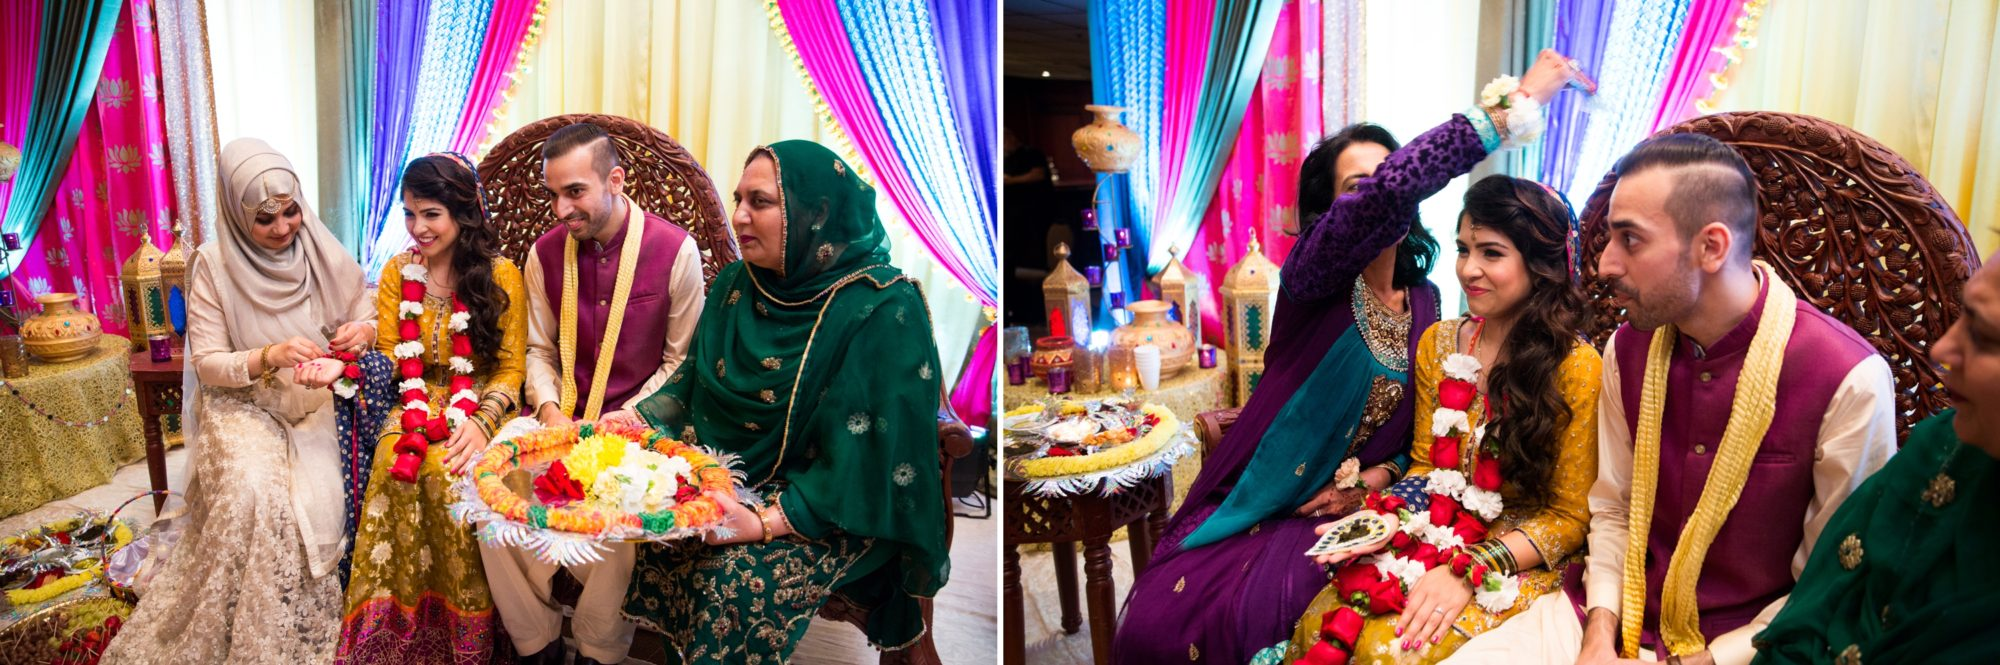 Wedding Mehndi Ceremony Zsuzsi Pal Photography Saba and Jawad